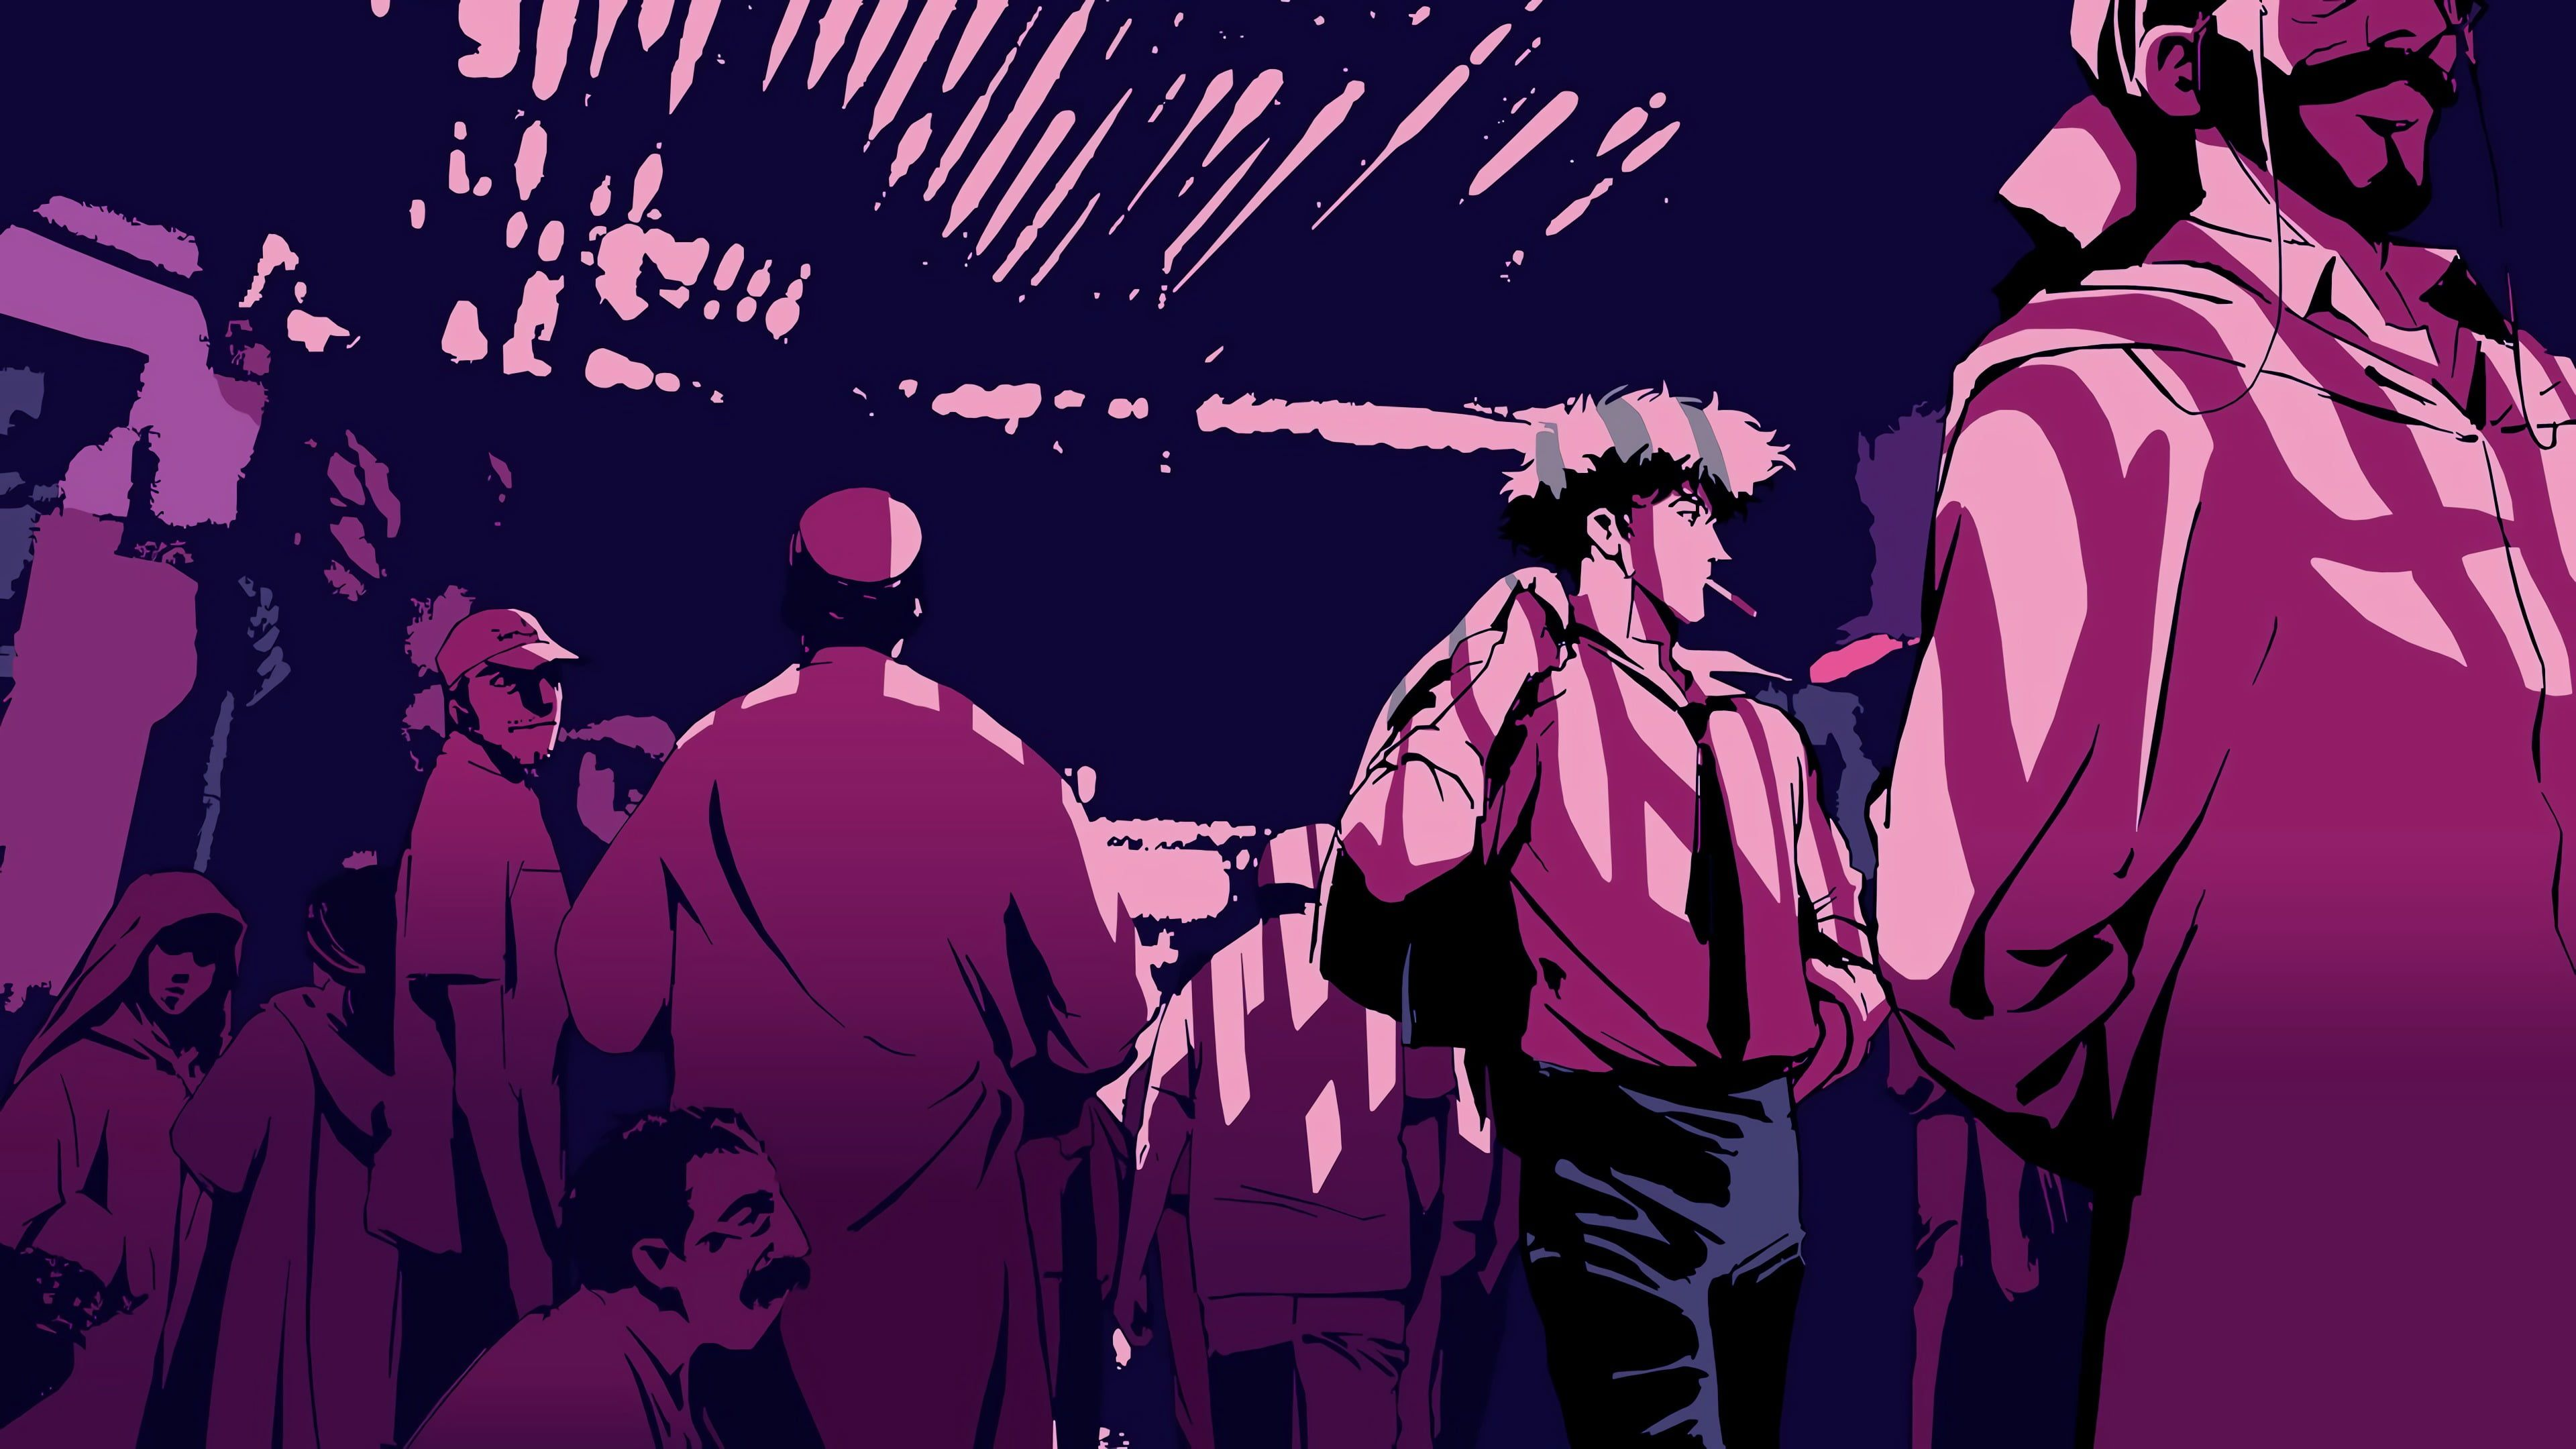 Anime Monochrome Cowboy Bebop Pink Purple 4k Wallpaper Hdwallpaper Desktop In 2020 Cowboy Bebop Wallpapers Cowboy Bebop Anime Cowboy Bebop